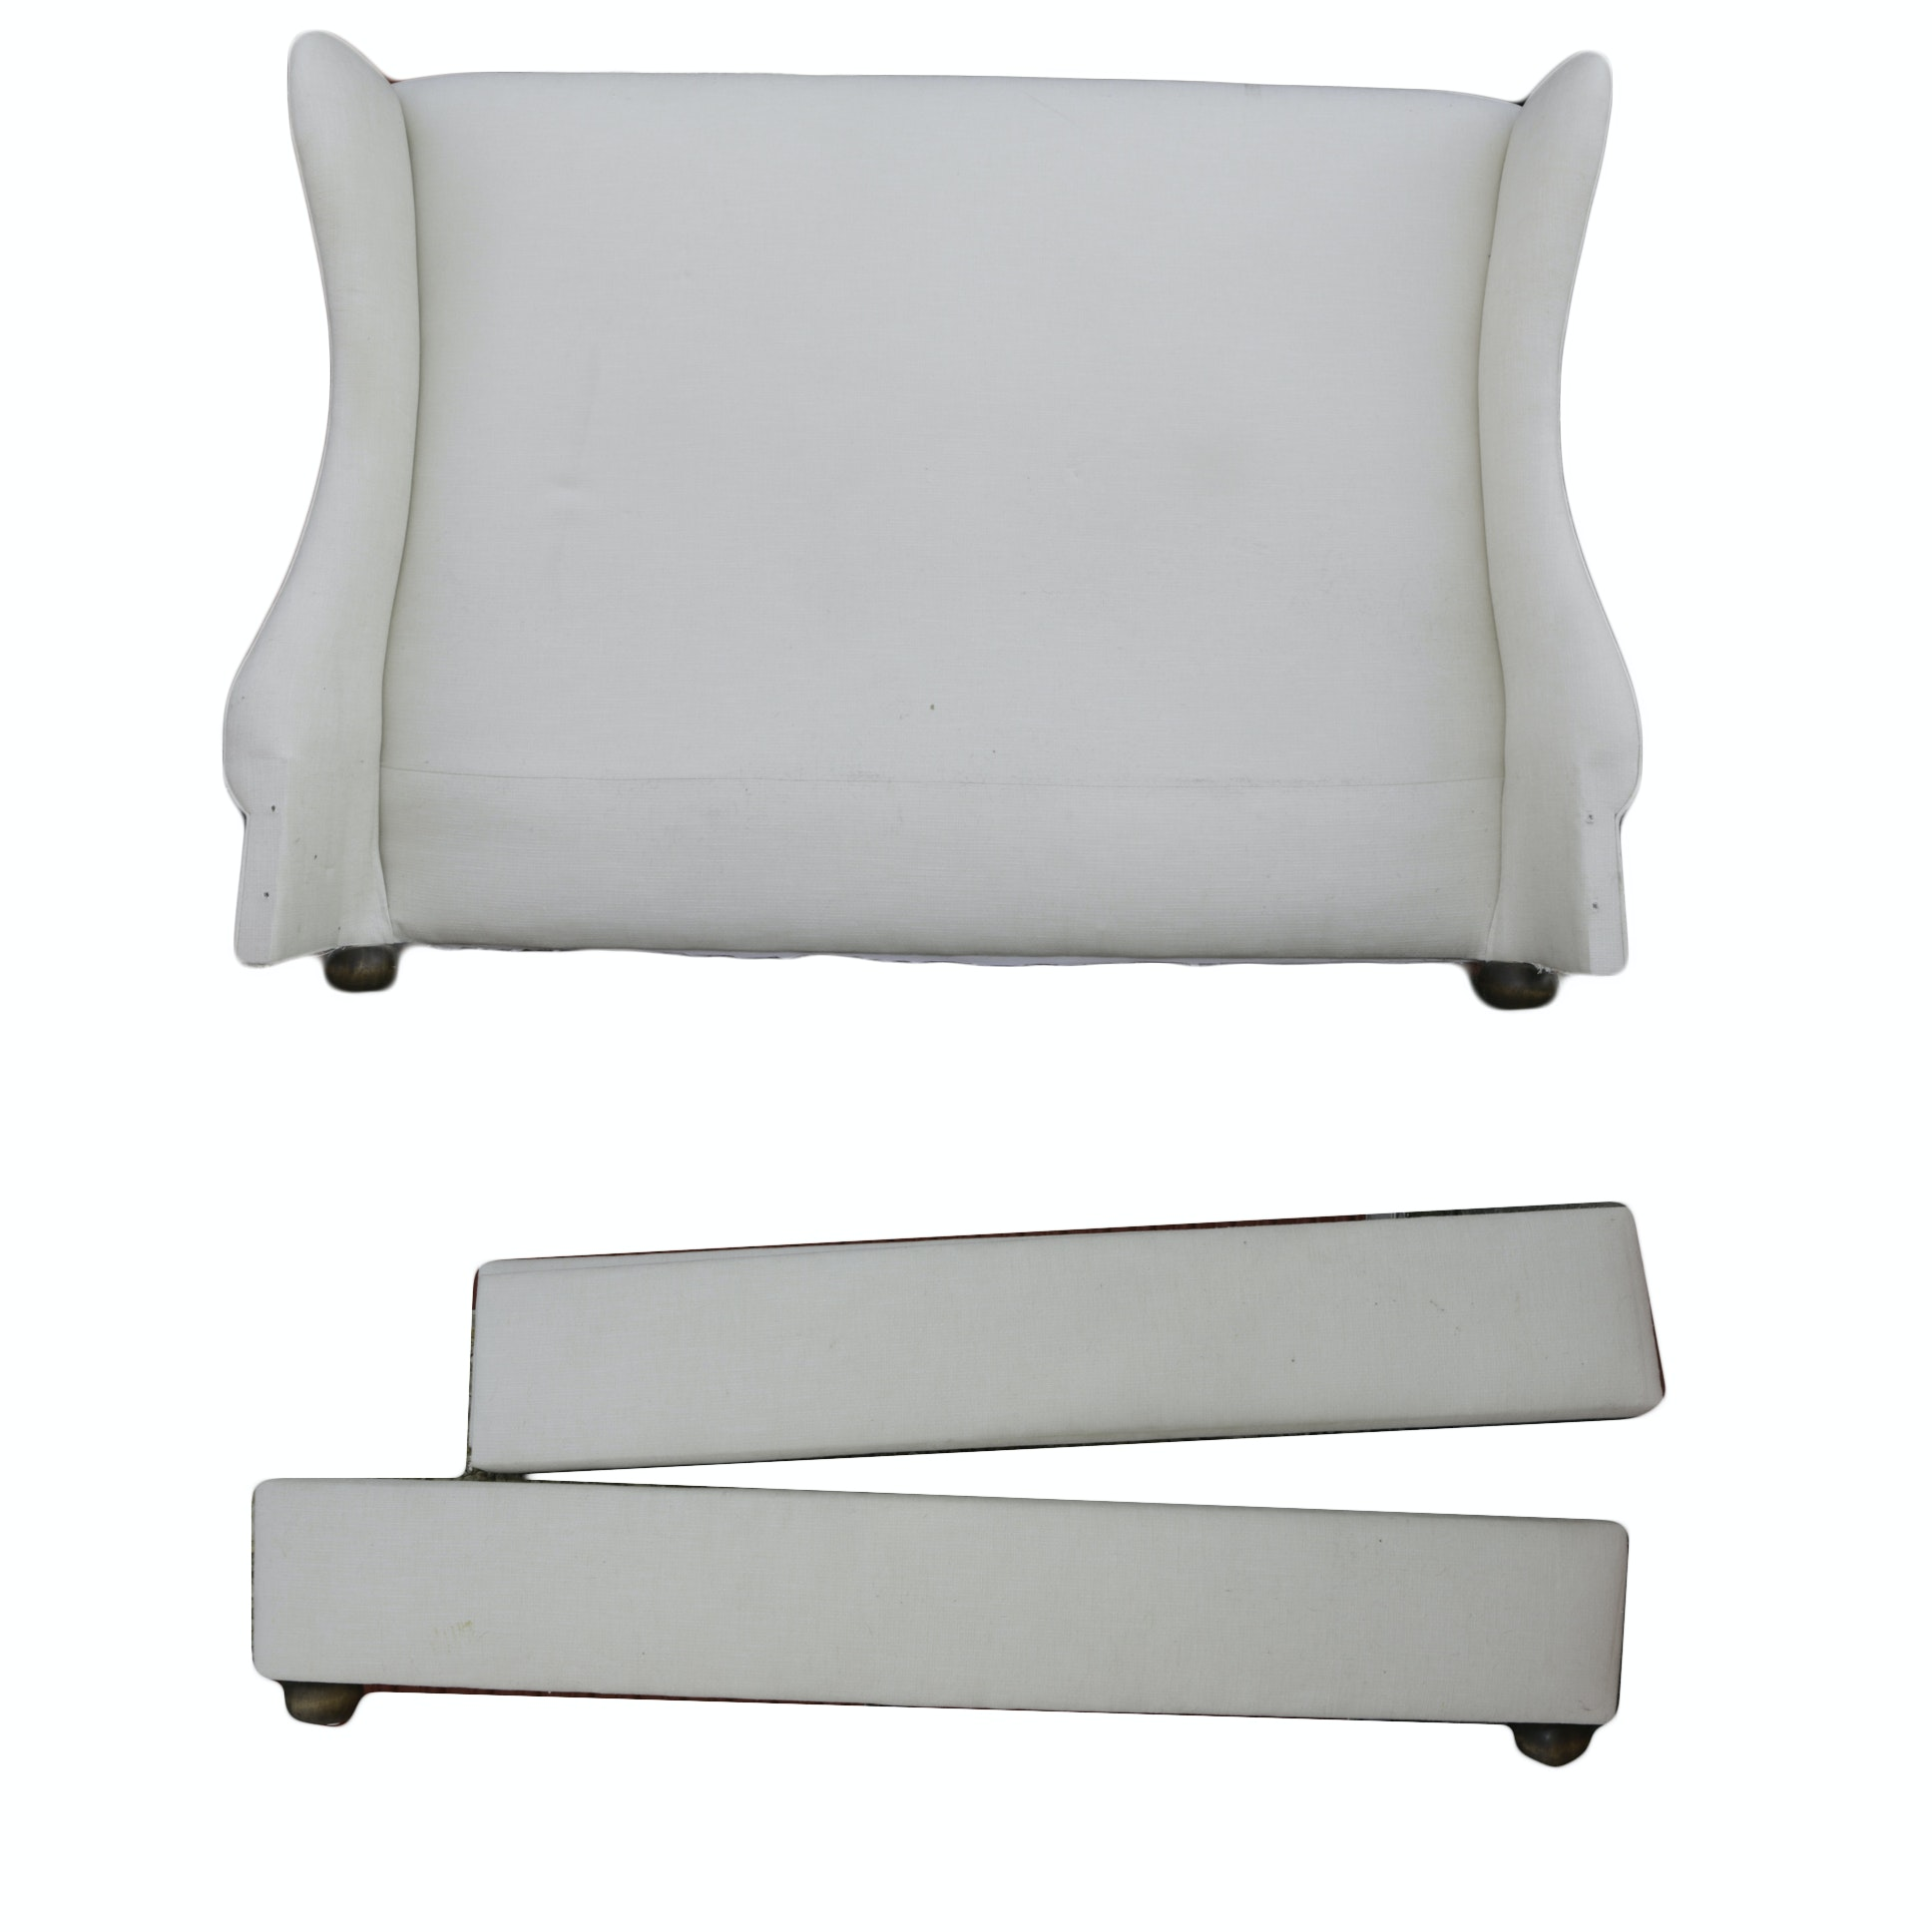 Upholstered Winged Bed Frame in King-Size